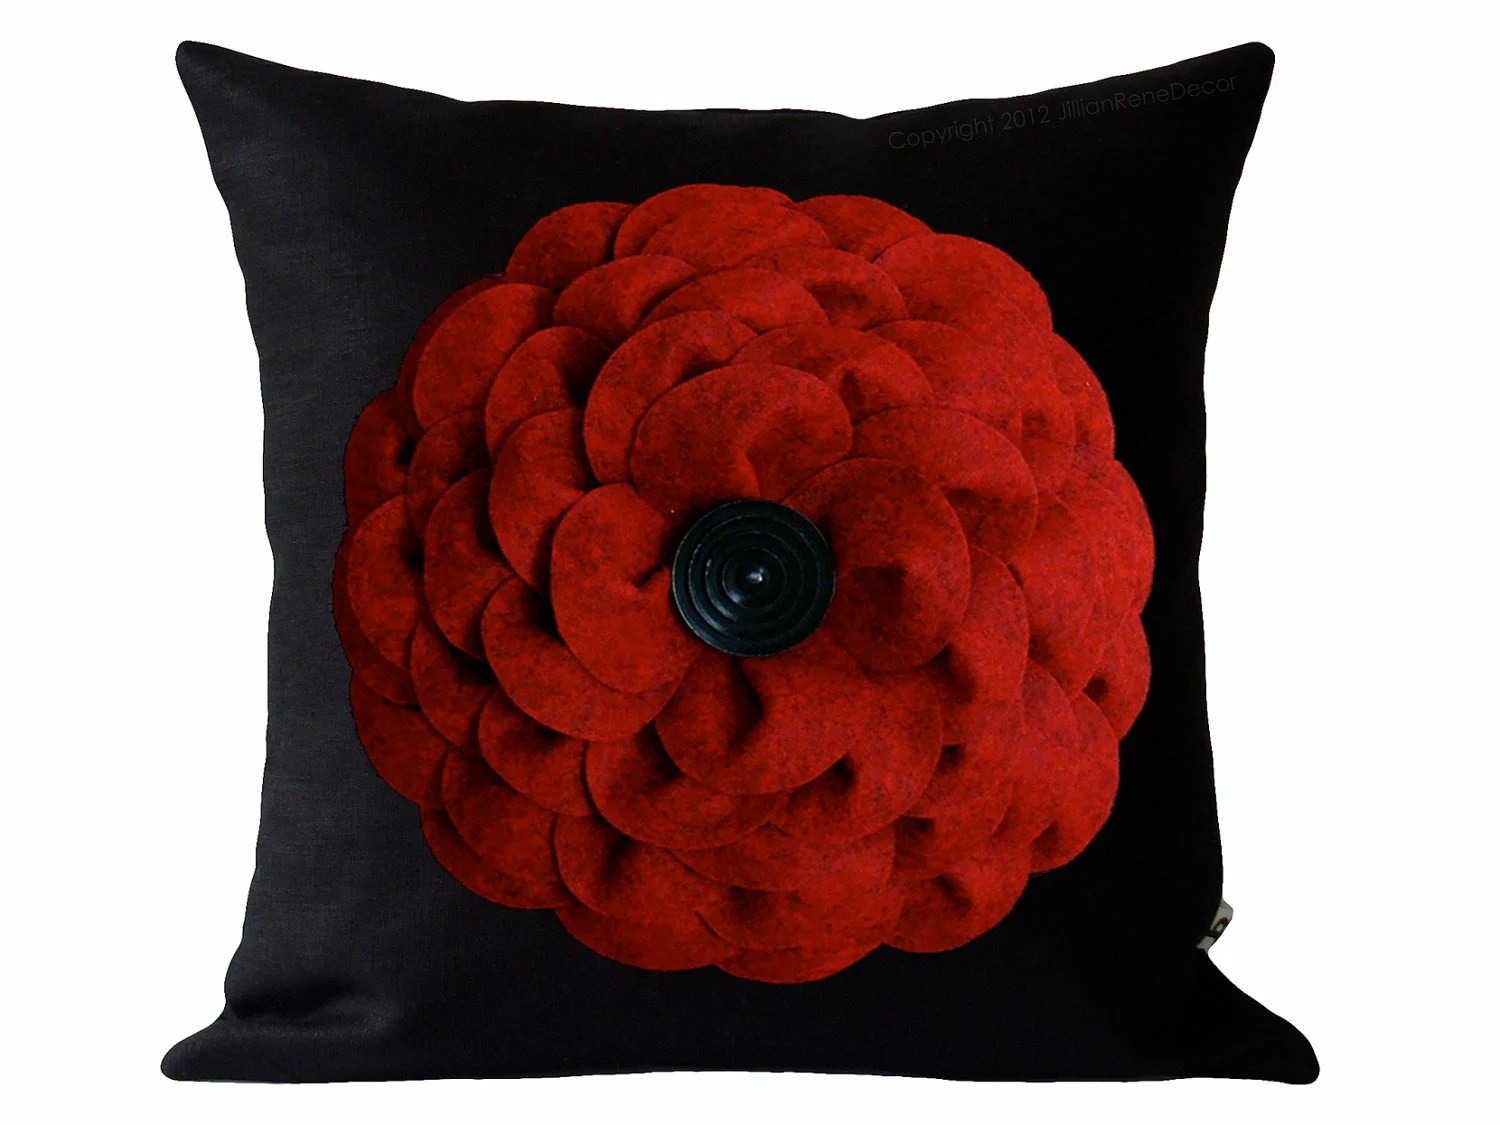 "Large Red Felt Flower 16"" DESIGNER PILLOW COVER - Black Linen - Black Wood Retro Button by JillianReneDecor Gift for Her Home Decor Under 75 - JillianReneDecor"